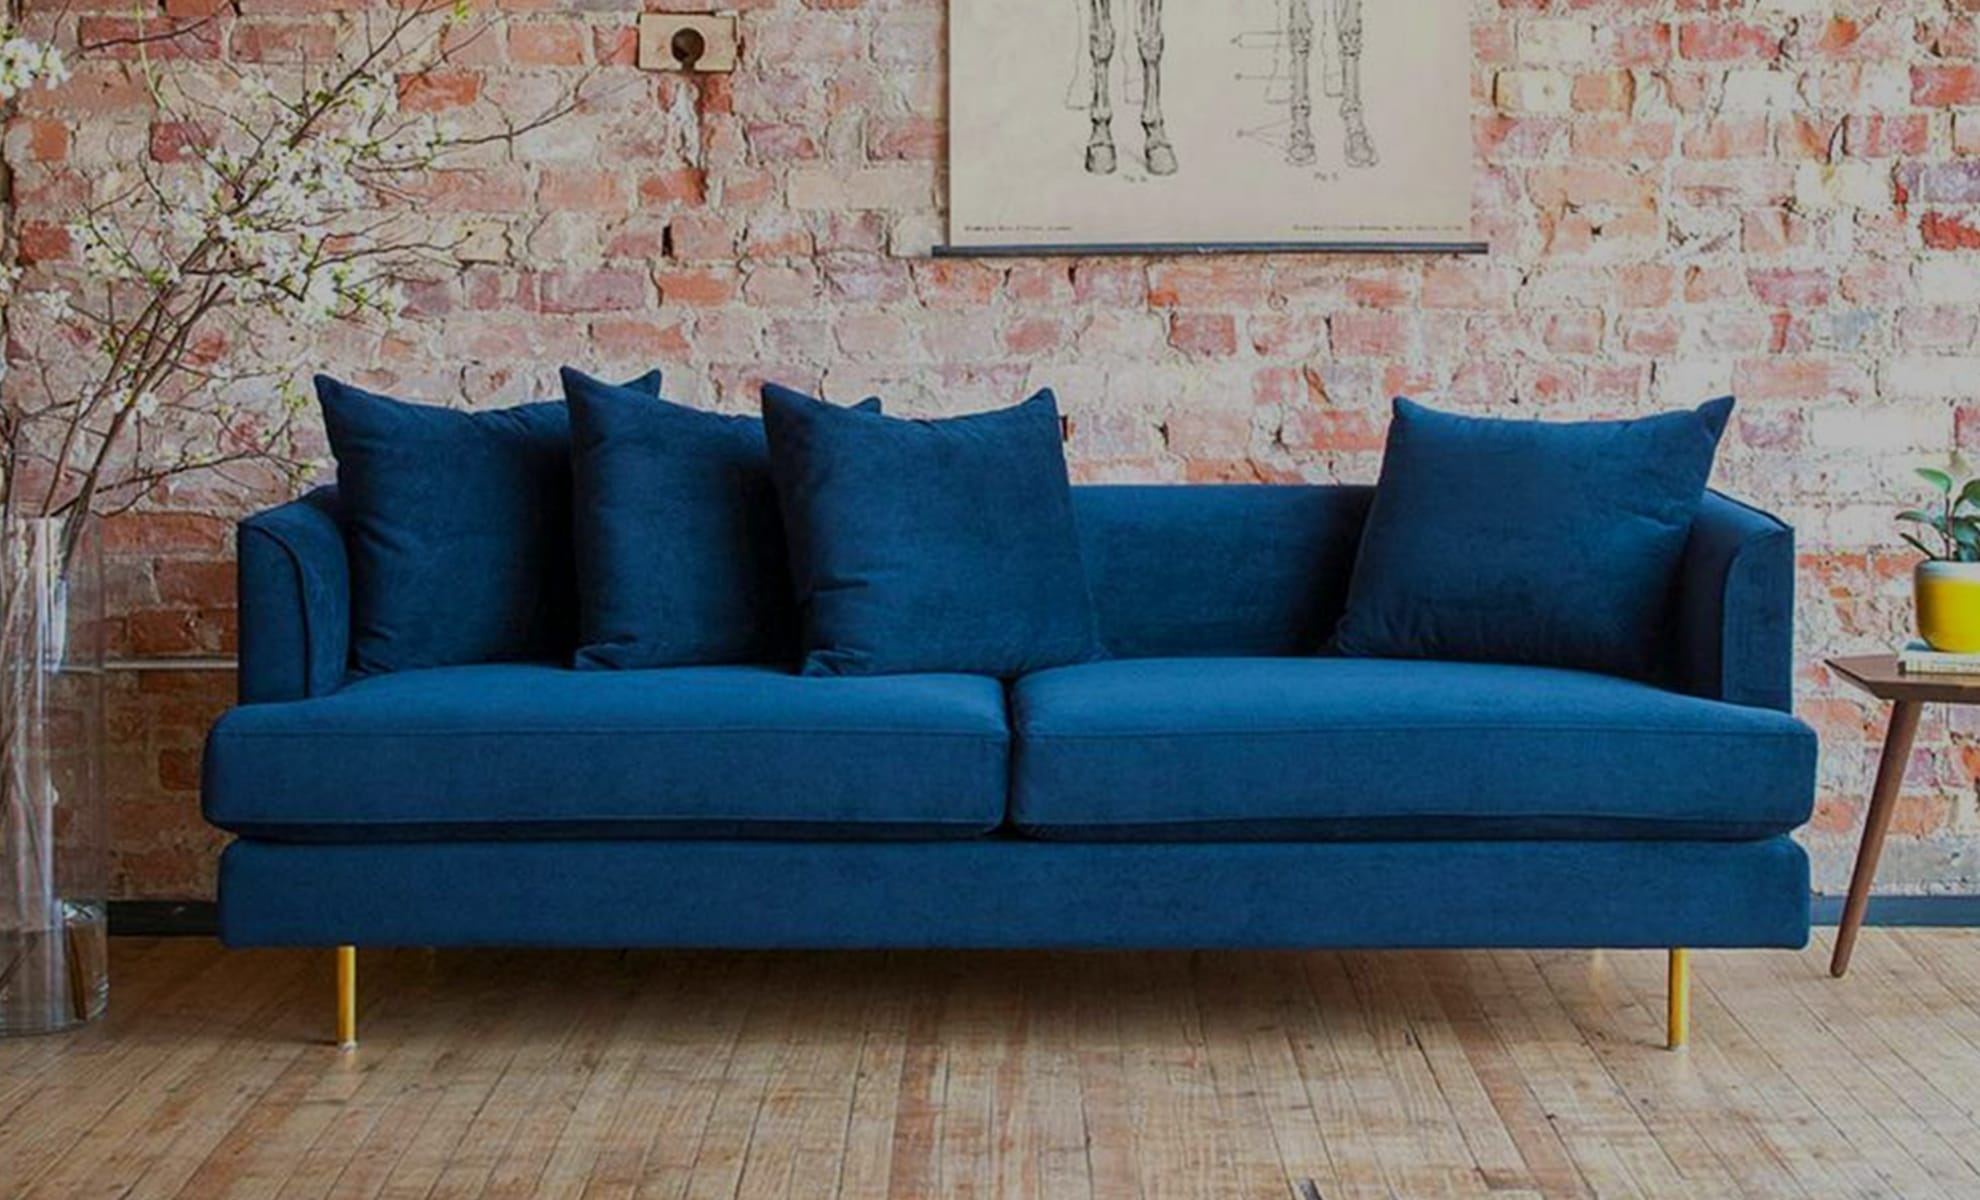 Buy Sofa Online How To Buy Furniture Online Tips Things To Consider At Lumens